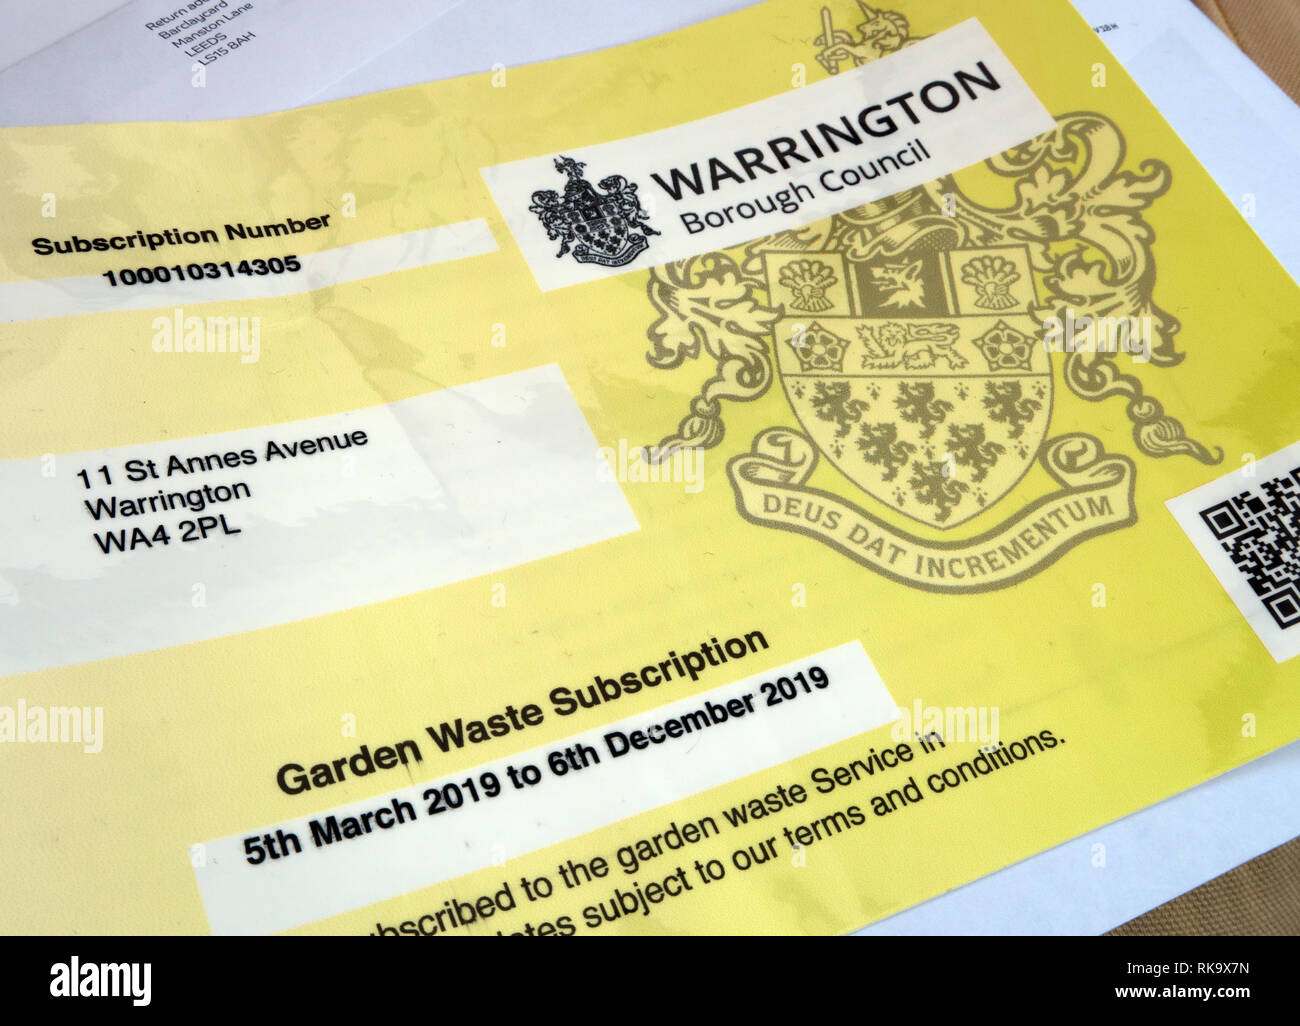 GoTonySmith,HotpixUK,@HotpixUK,UK,England,North West England,WBC,Cheshire,increasing cost of waste,waste disposal,disposal,Warrington Borough Council,charge,charges,2019,Green Bin,recycling,community,Council Tax,increase,costs,increase in costs,charging,bins,charging for recycling,kerbside collection service,garden waste,council charge for green waste,online payments,compost,confirmation,unpopular waste charge,unpopular,waste charge,budget proposals,budget proposal,budget,proposals